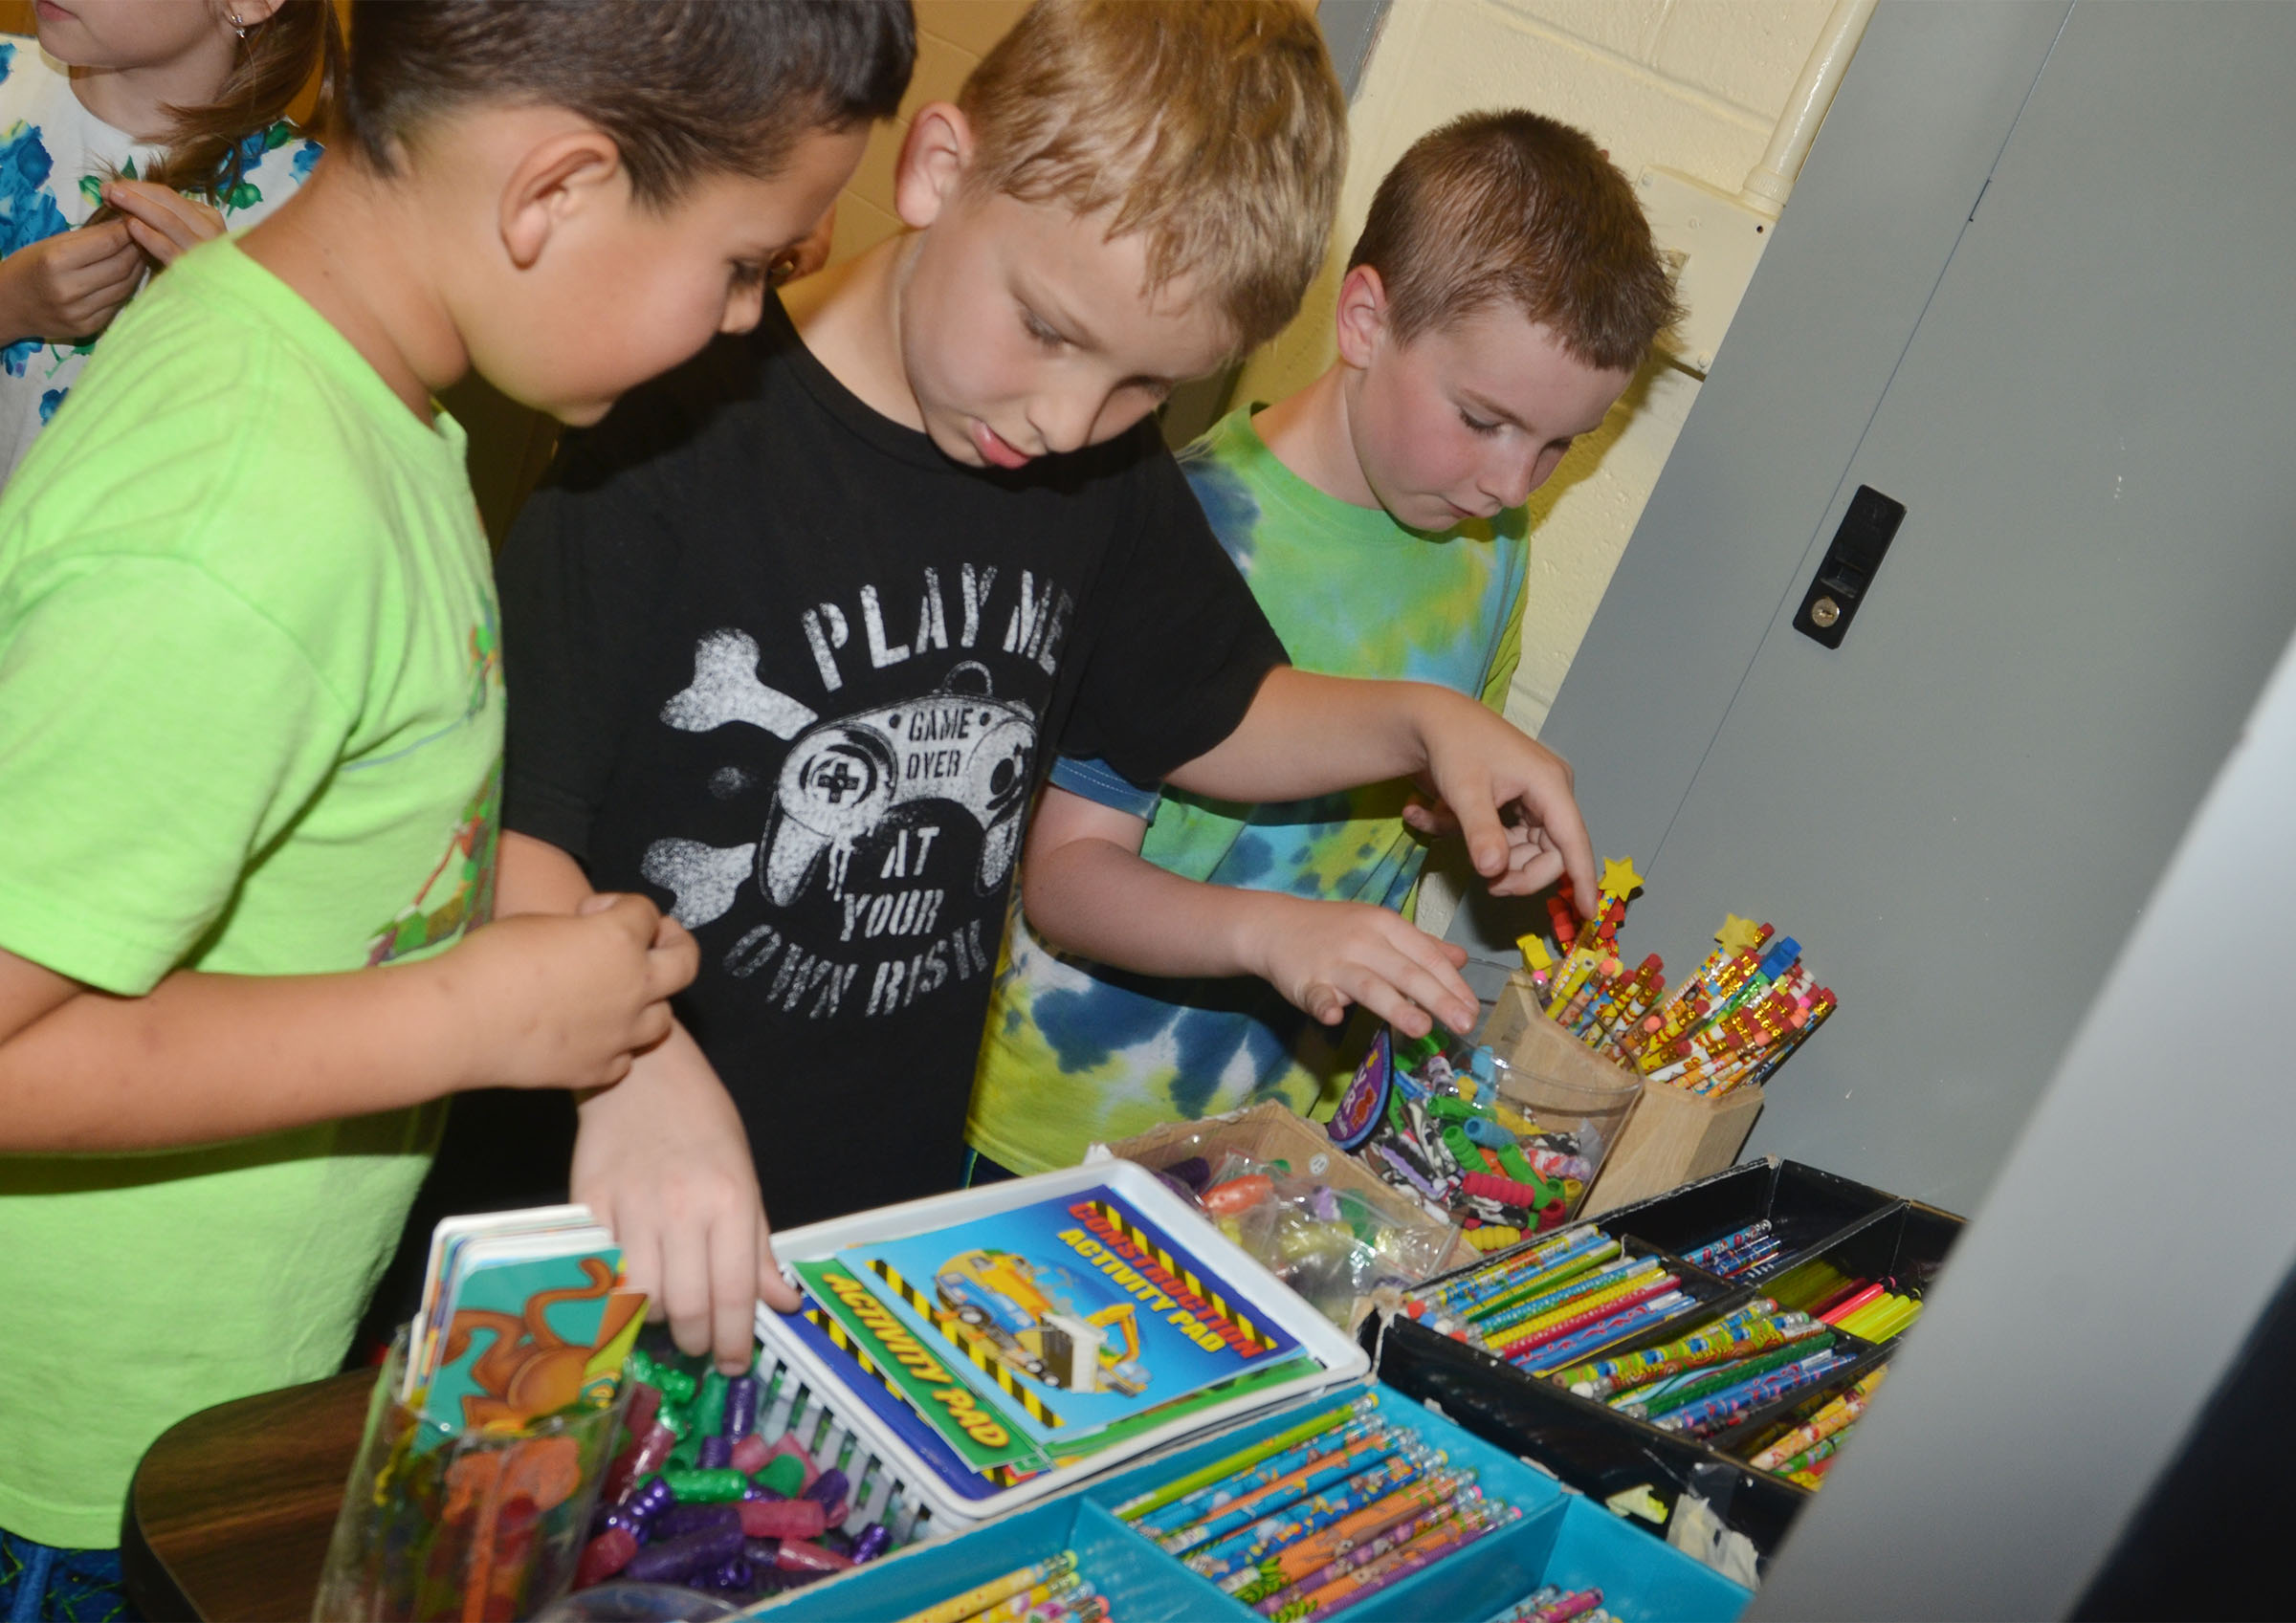 CES second-graders, from left, Damien Clark, Mason Davis and Stephen Green shop with their AR points.